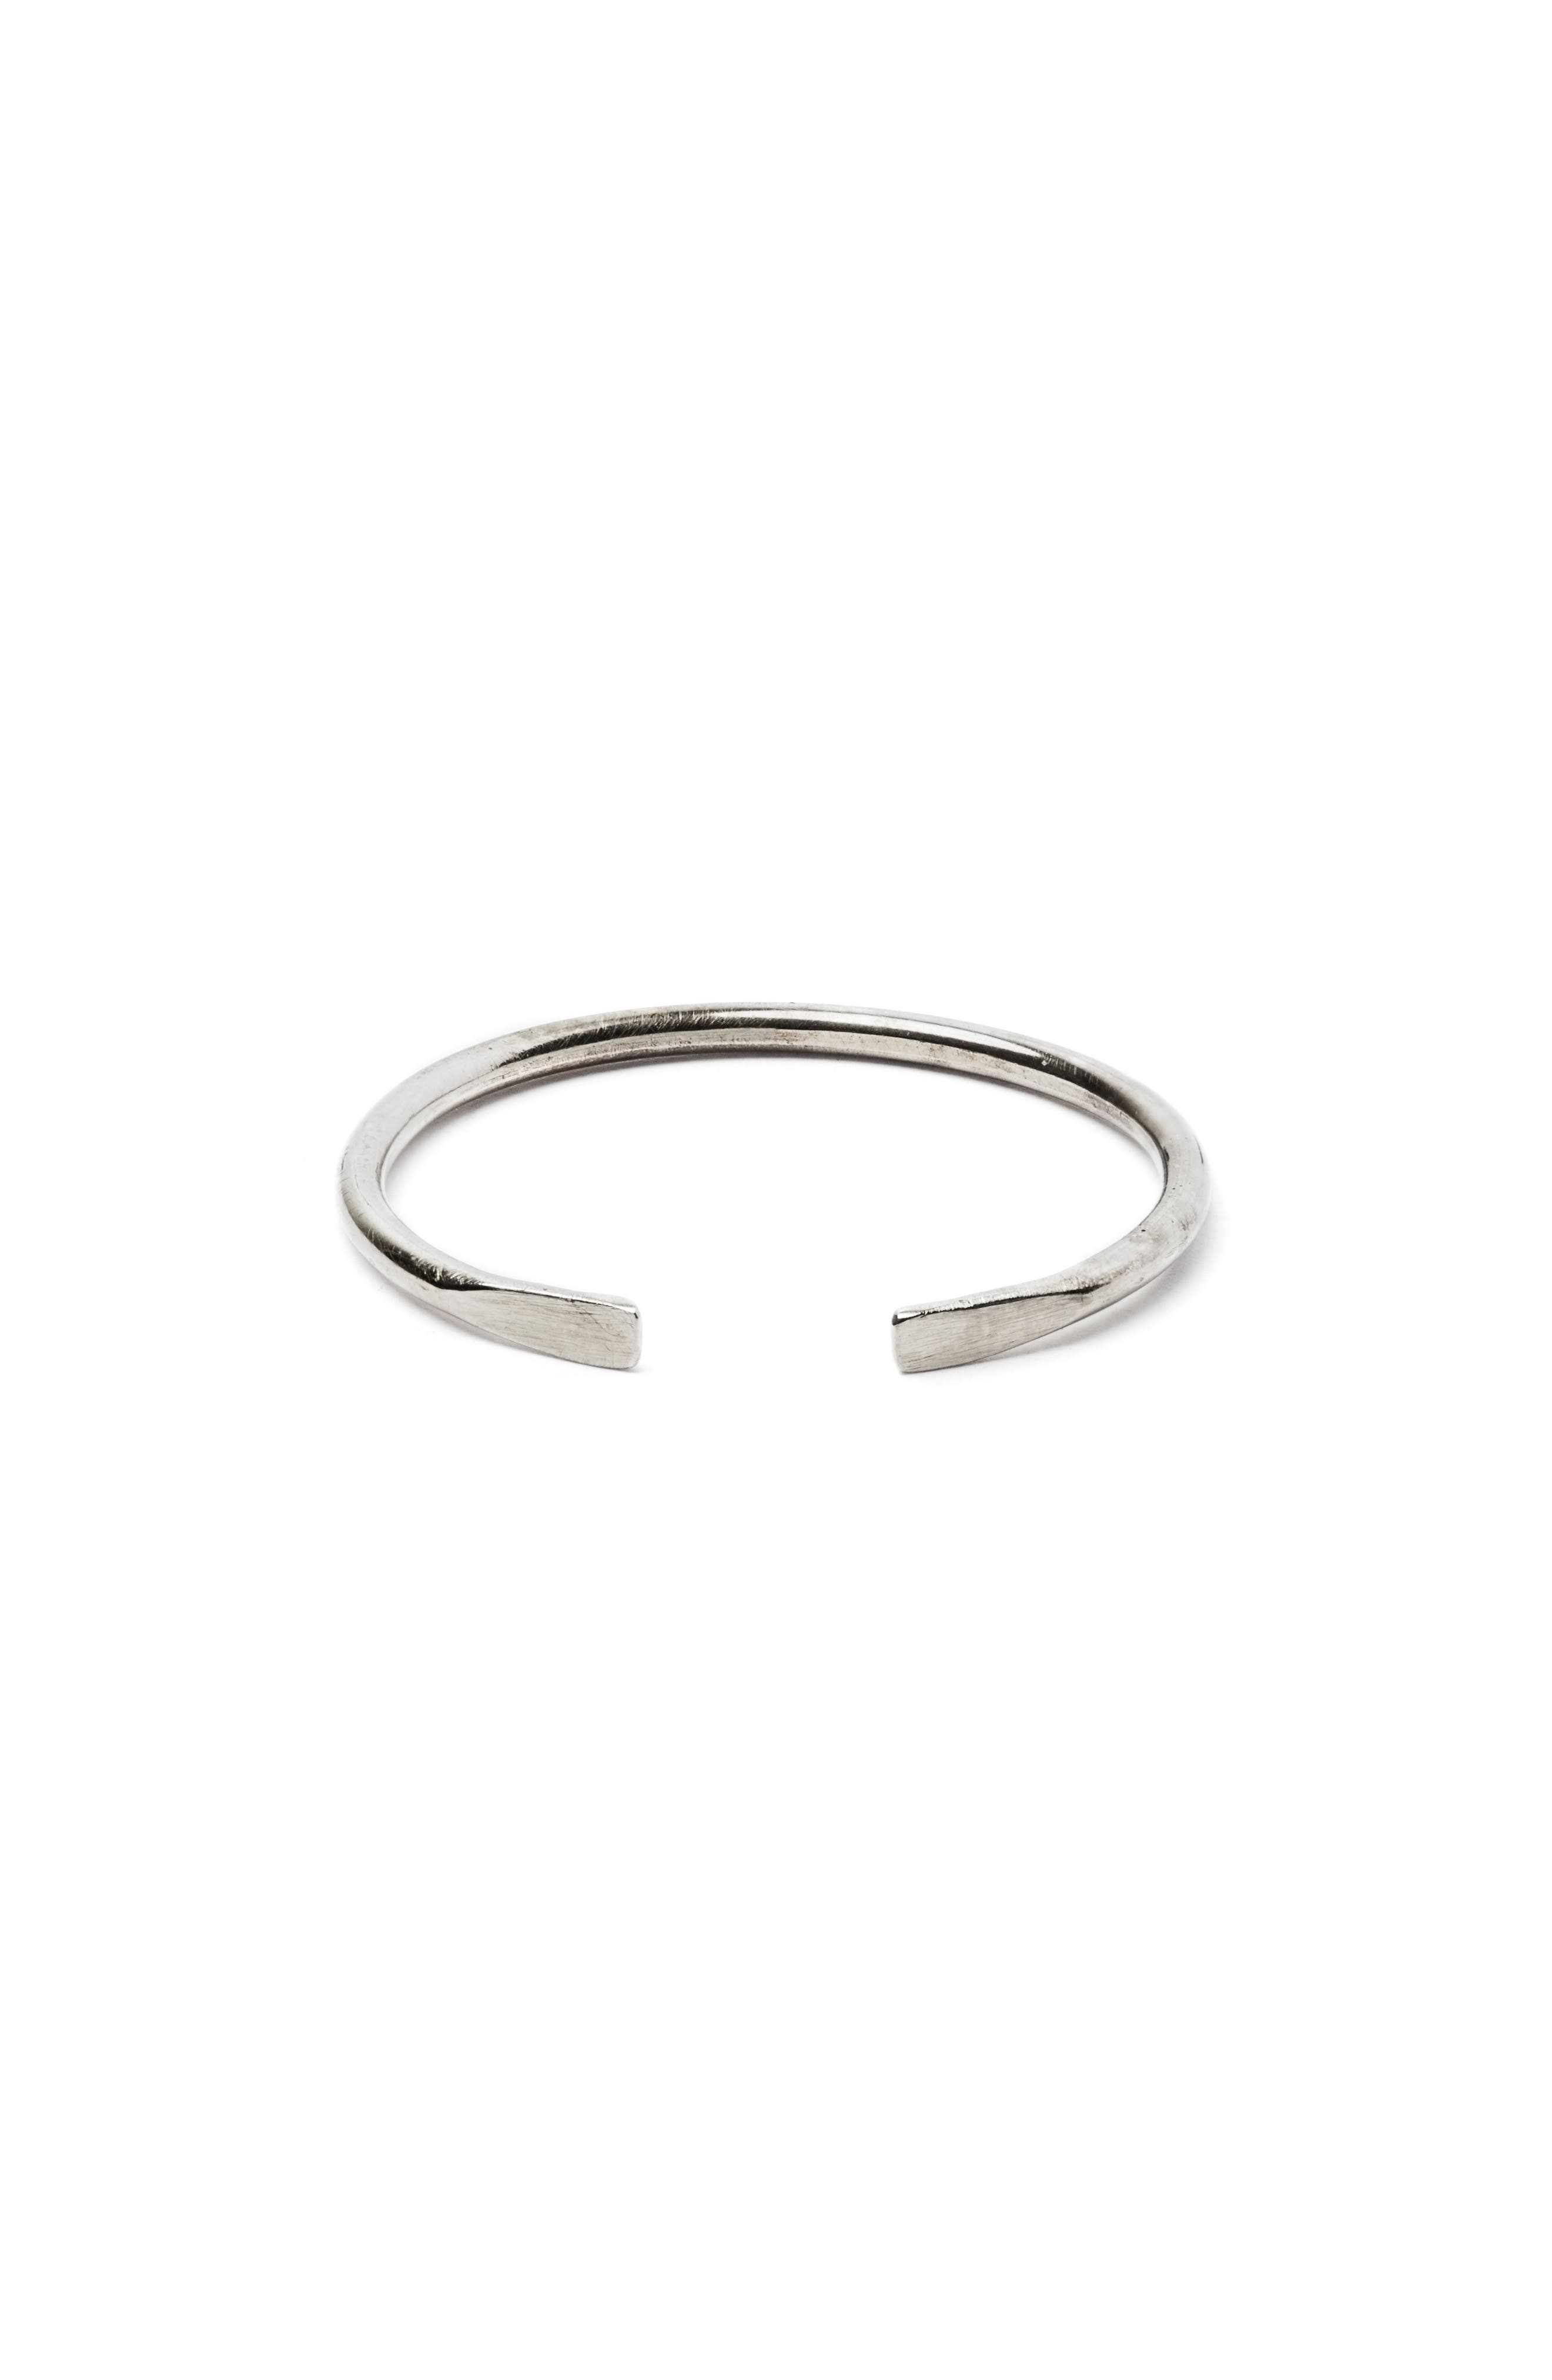 18k White Gold Ring,                         Main,                         color, SILVER